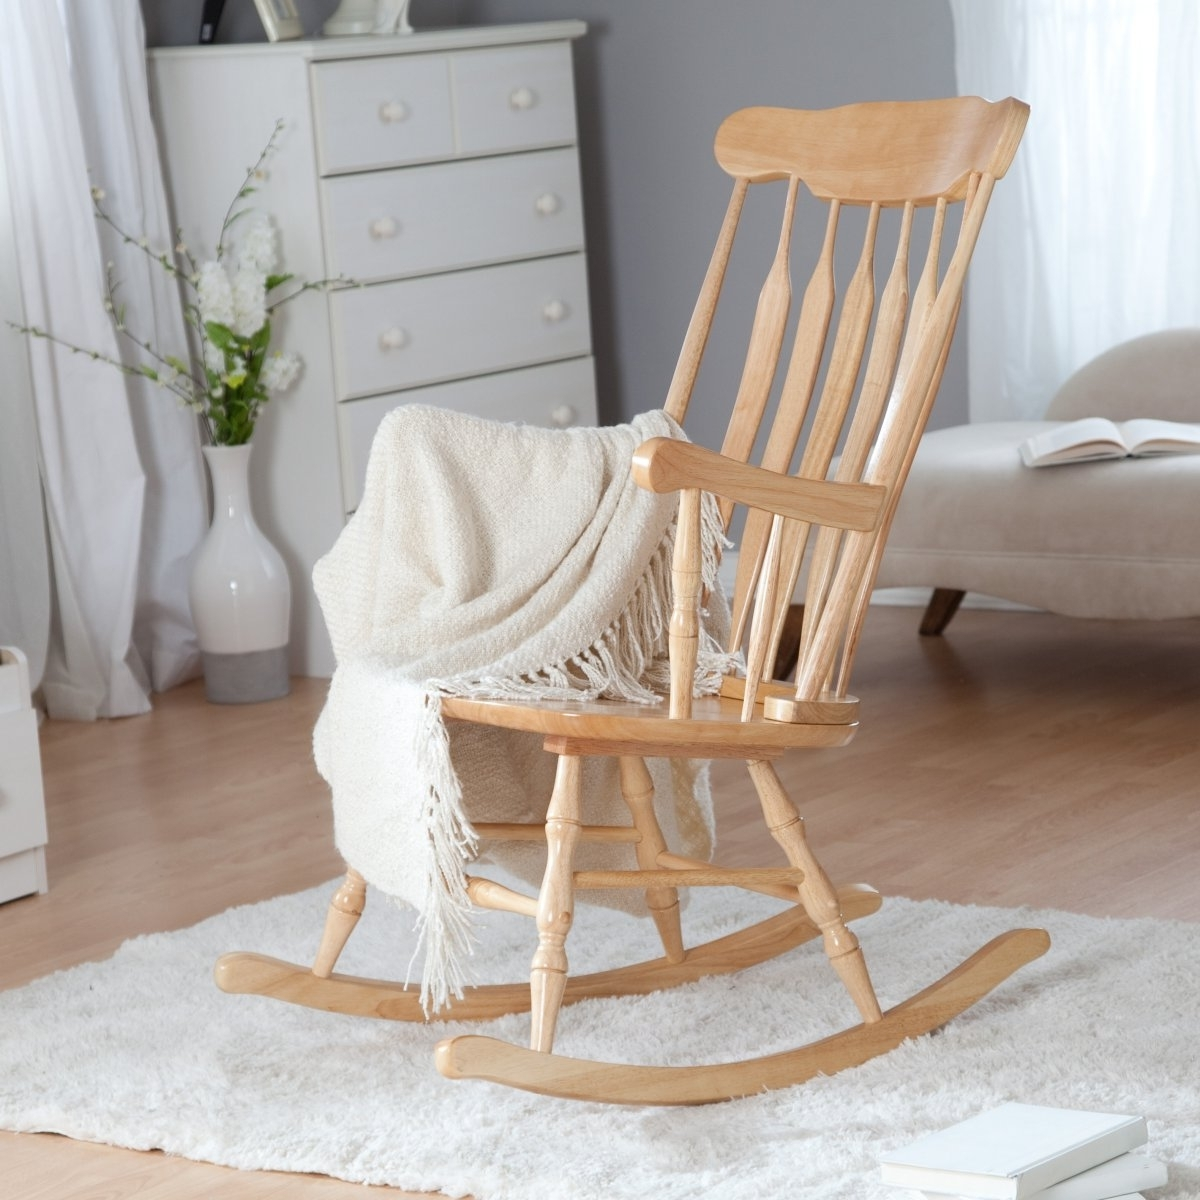 Most Recent Rocking Chairs For Baby Room Inside Living Room Furniture : Rocking Chairs For Baby Nursery Wooden (View 11 of 20)